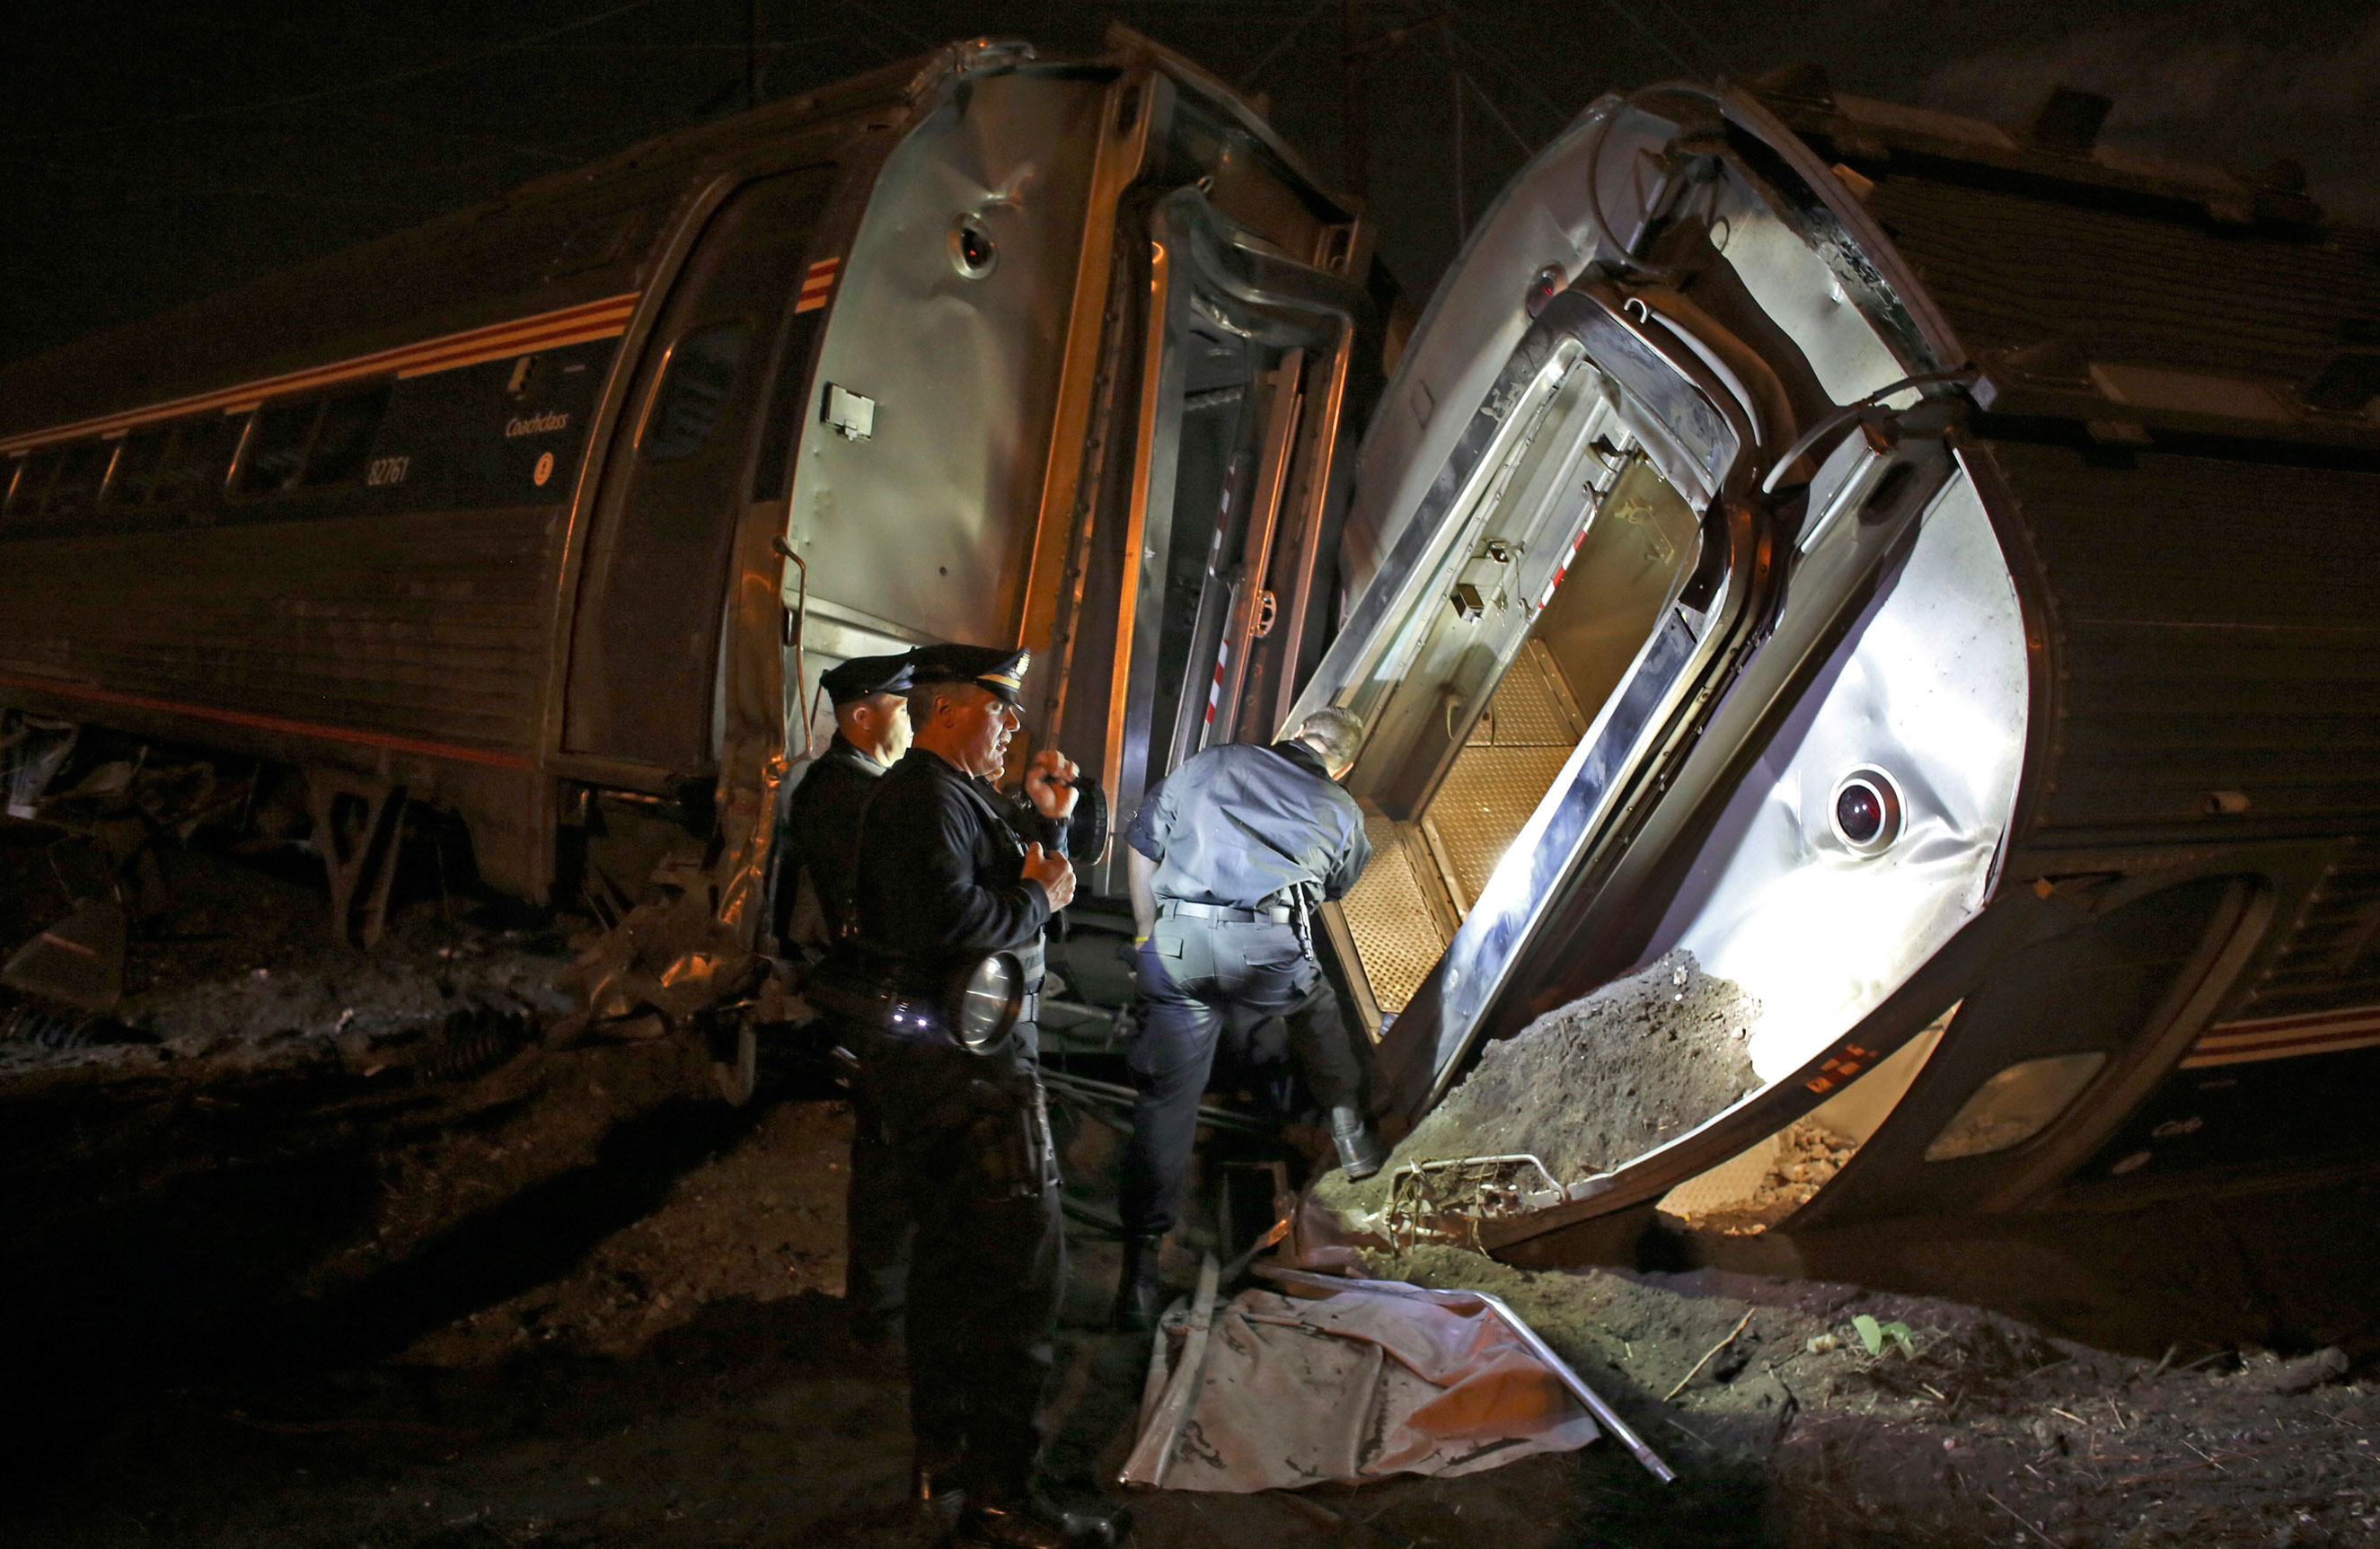 Emergency personnel work the scene of the Amtrak train wreck on May 12, 2015 in Philadelphia.